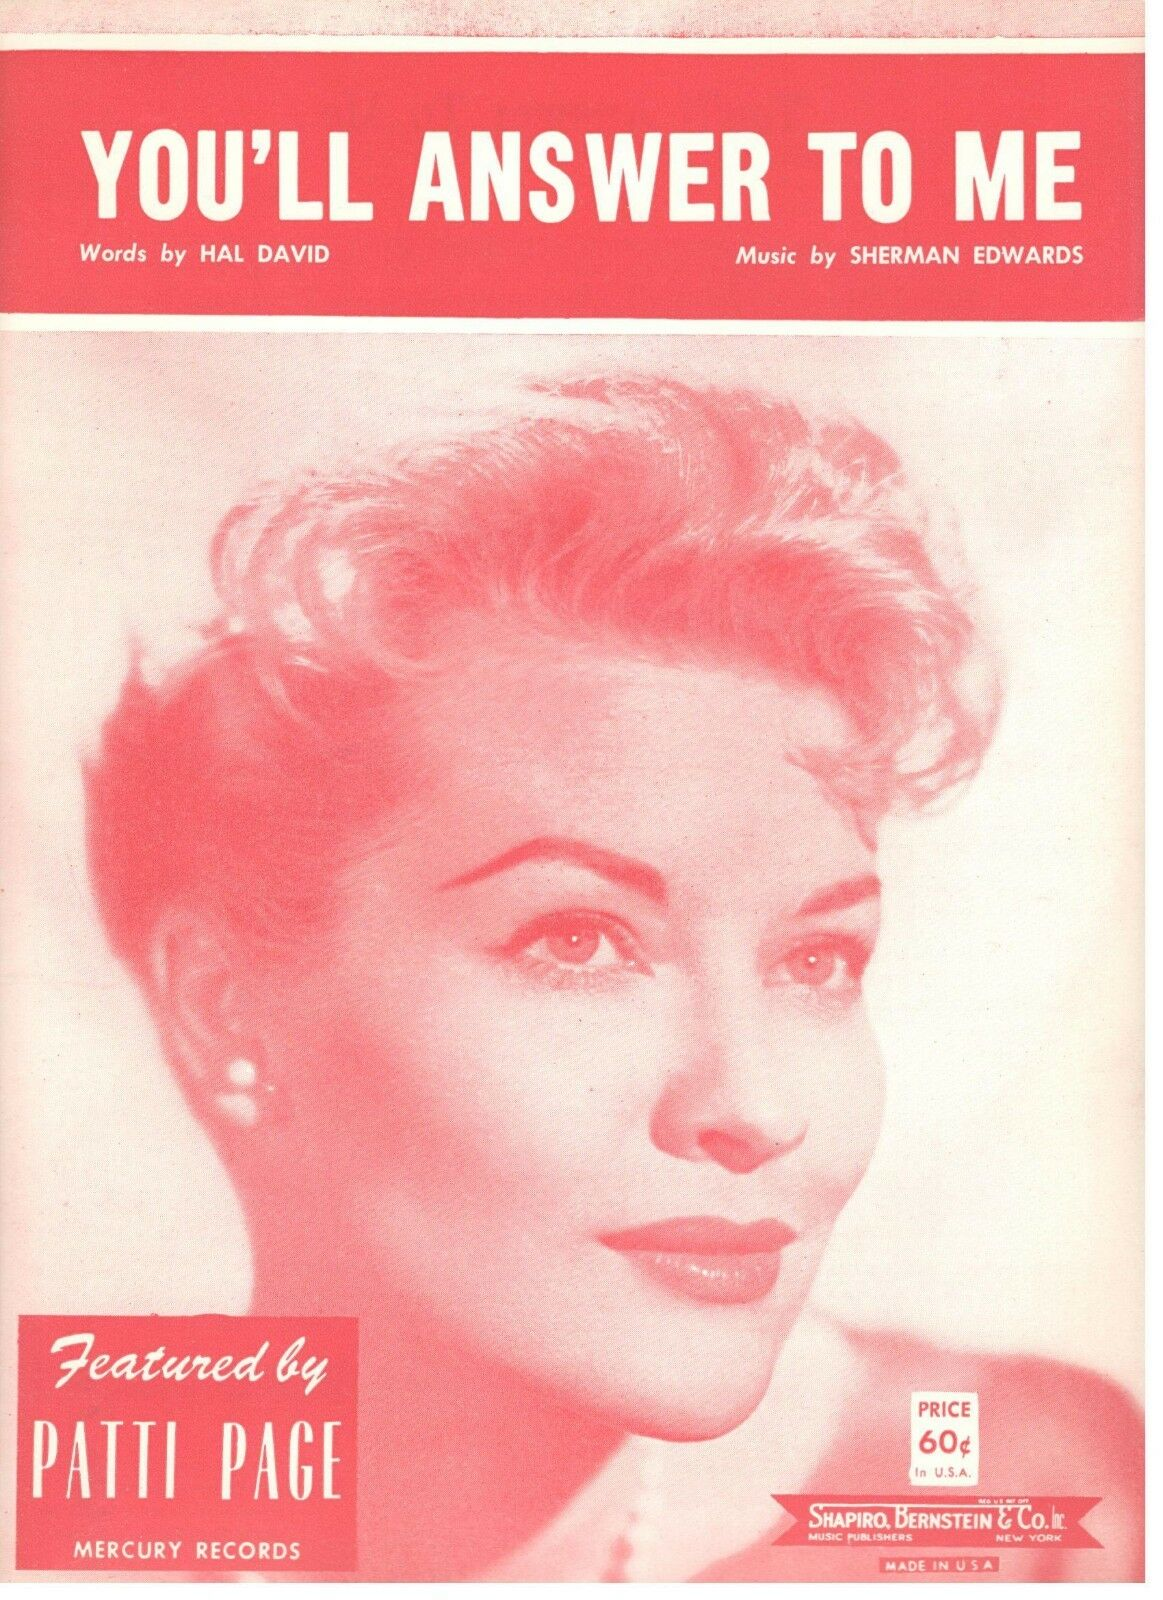 PATTI PAGE  YOU'LL ANSWER TO ME  SHEET MUSIC-1961-VERY RARE-NEW-MINT CONDITION